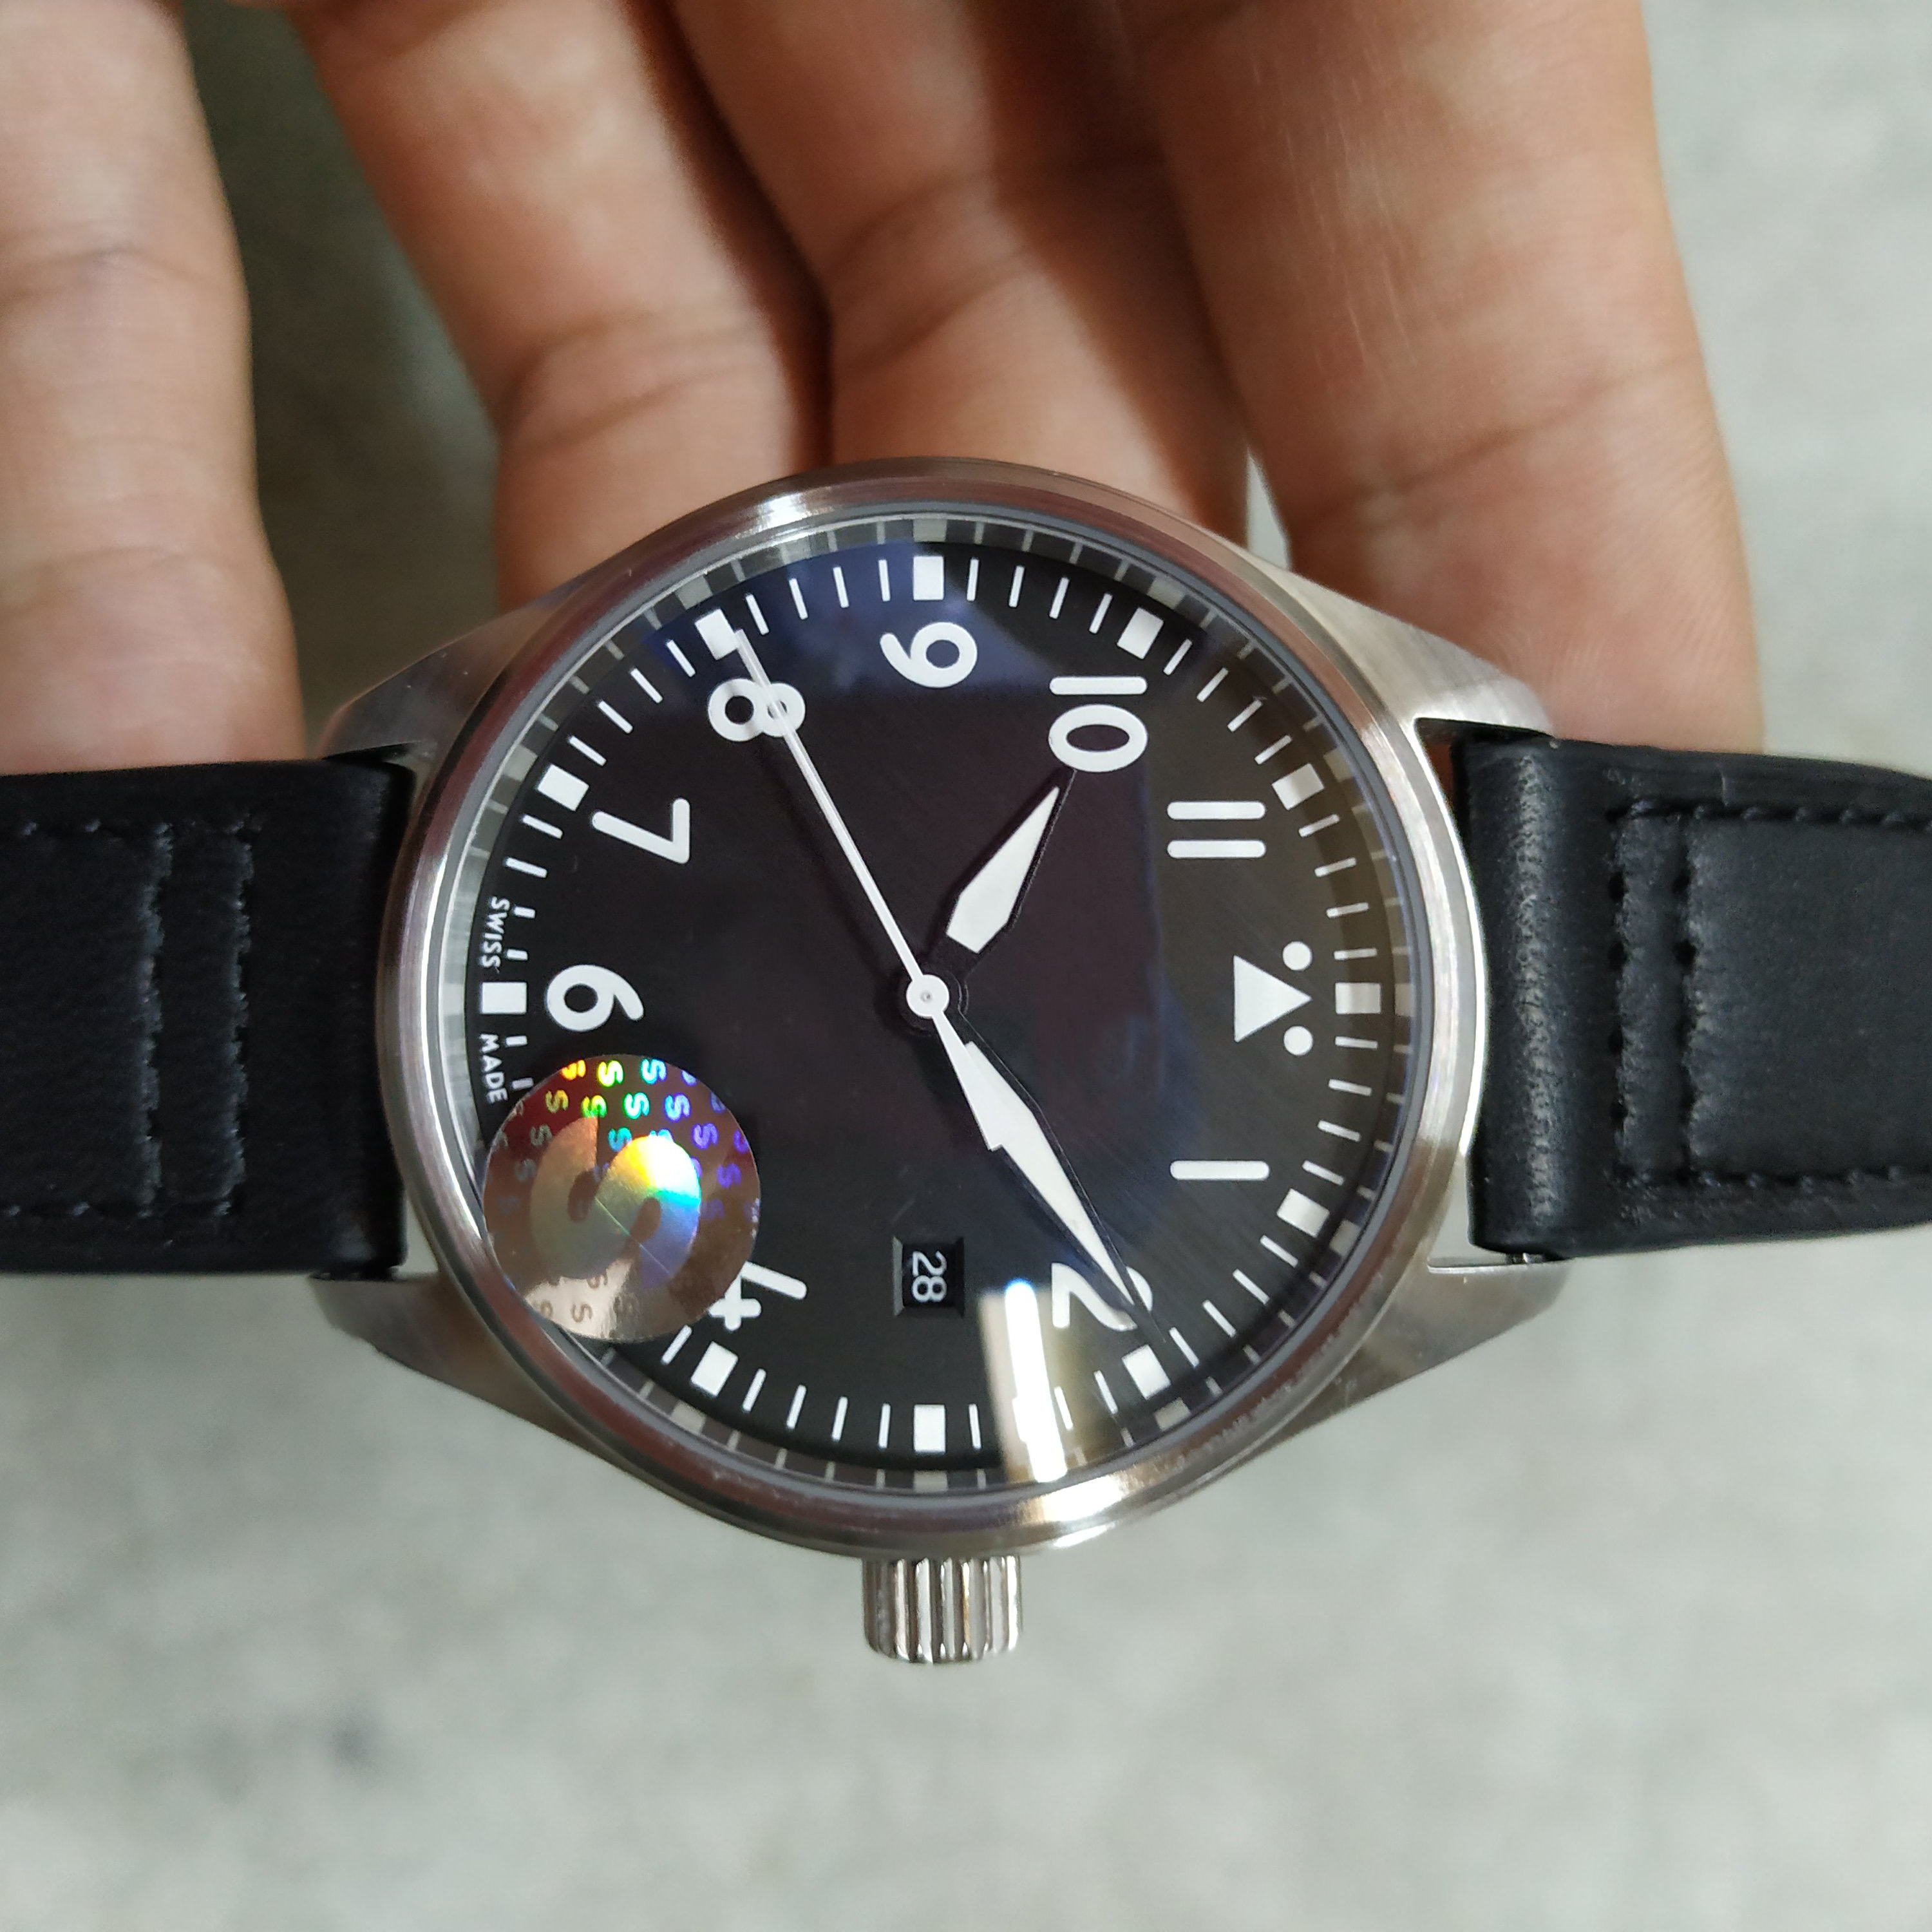 Hot Sale Automatic Movement Leather Black Dial Date 40mm Men's Fashion IW324010 PILOT'S MARK XVIII WATCHES